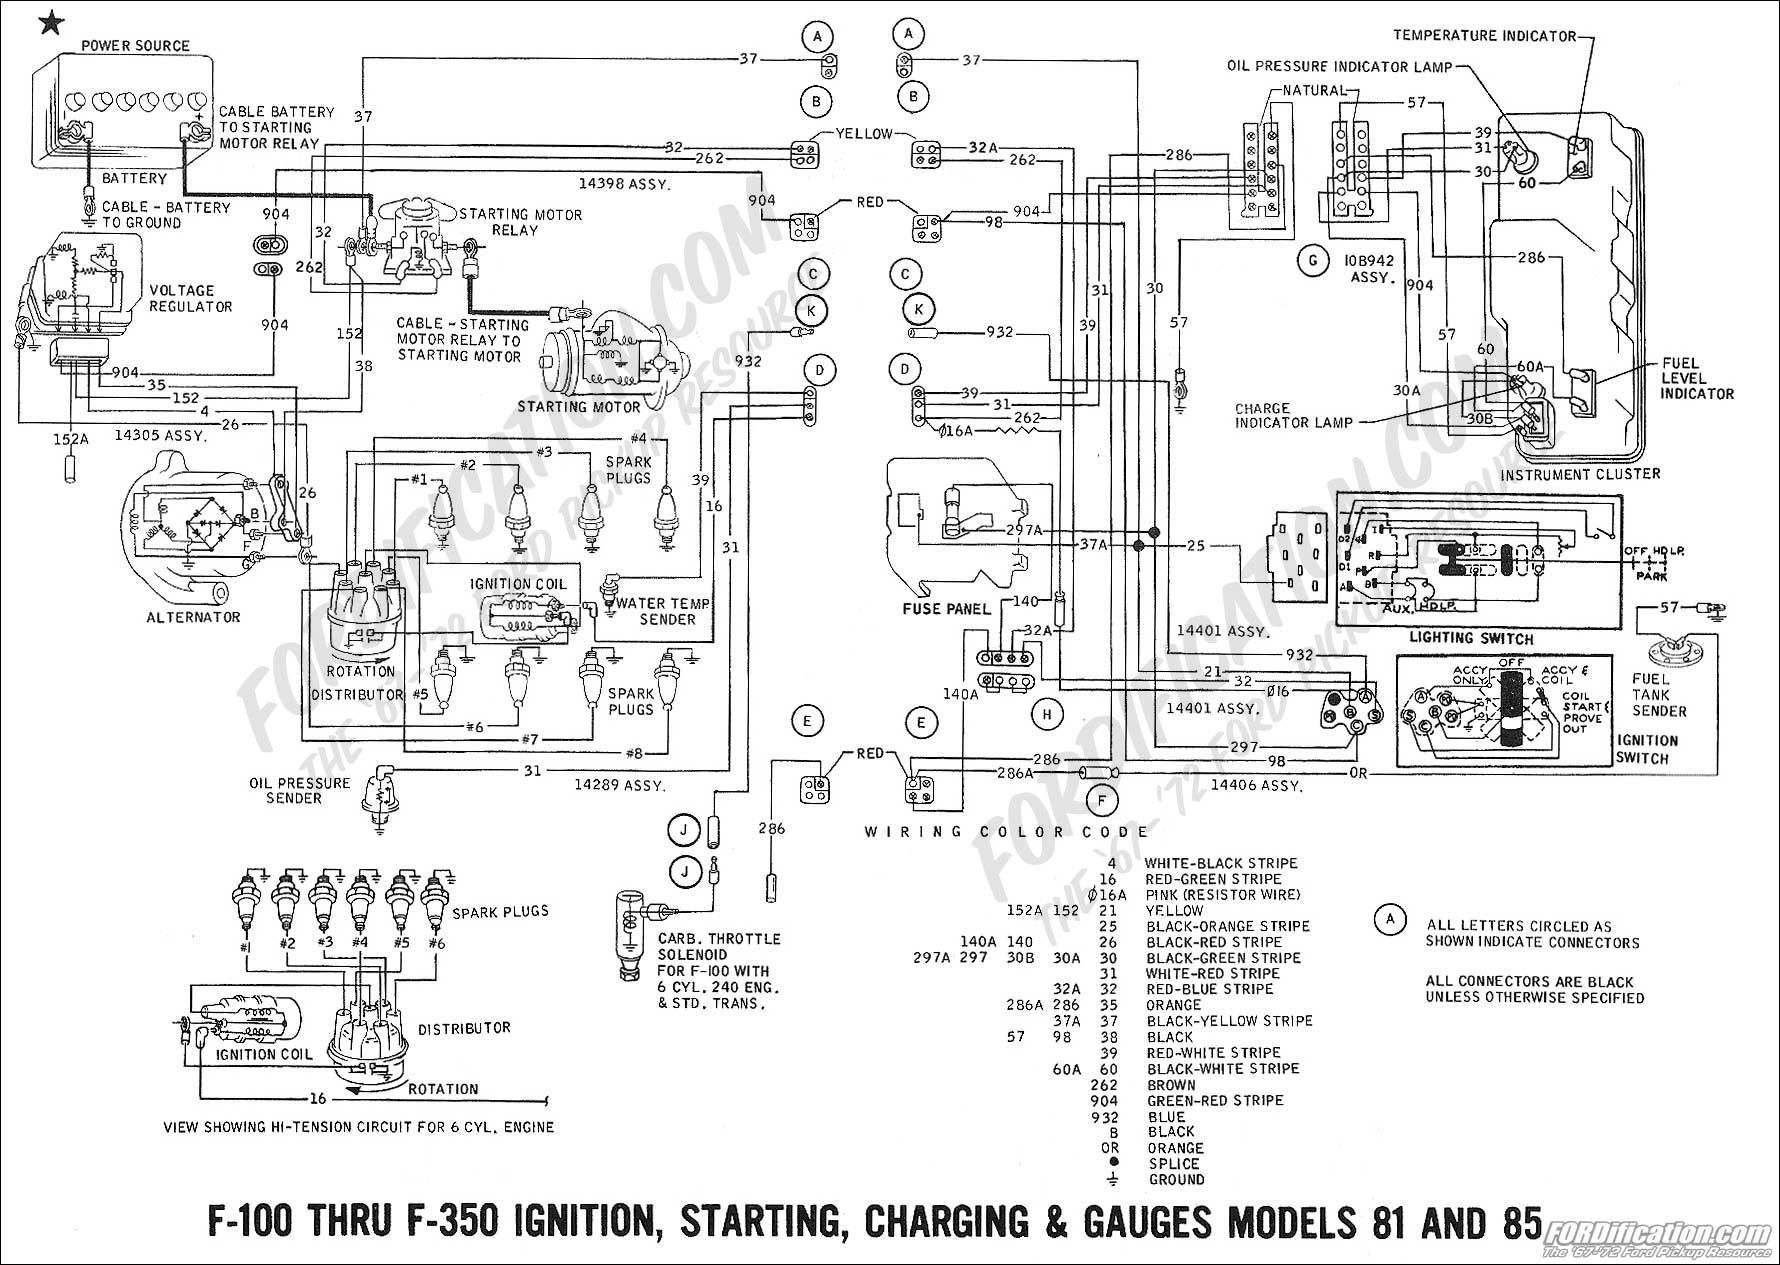 hight resolution of 1969 f100 wiring harness wiring diagram img 1969 f100 wiring harness 1969 f100 wiring harness